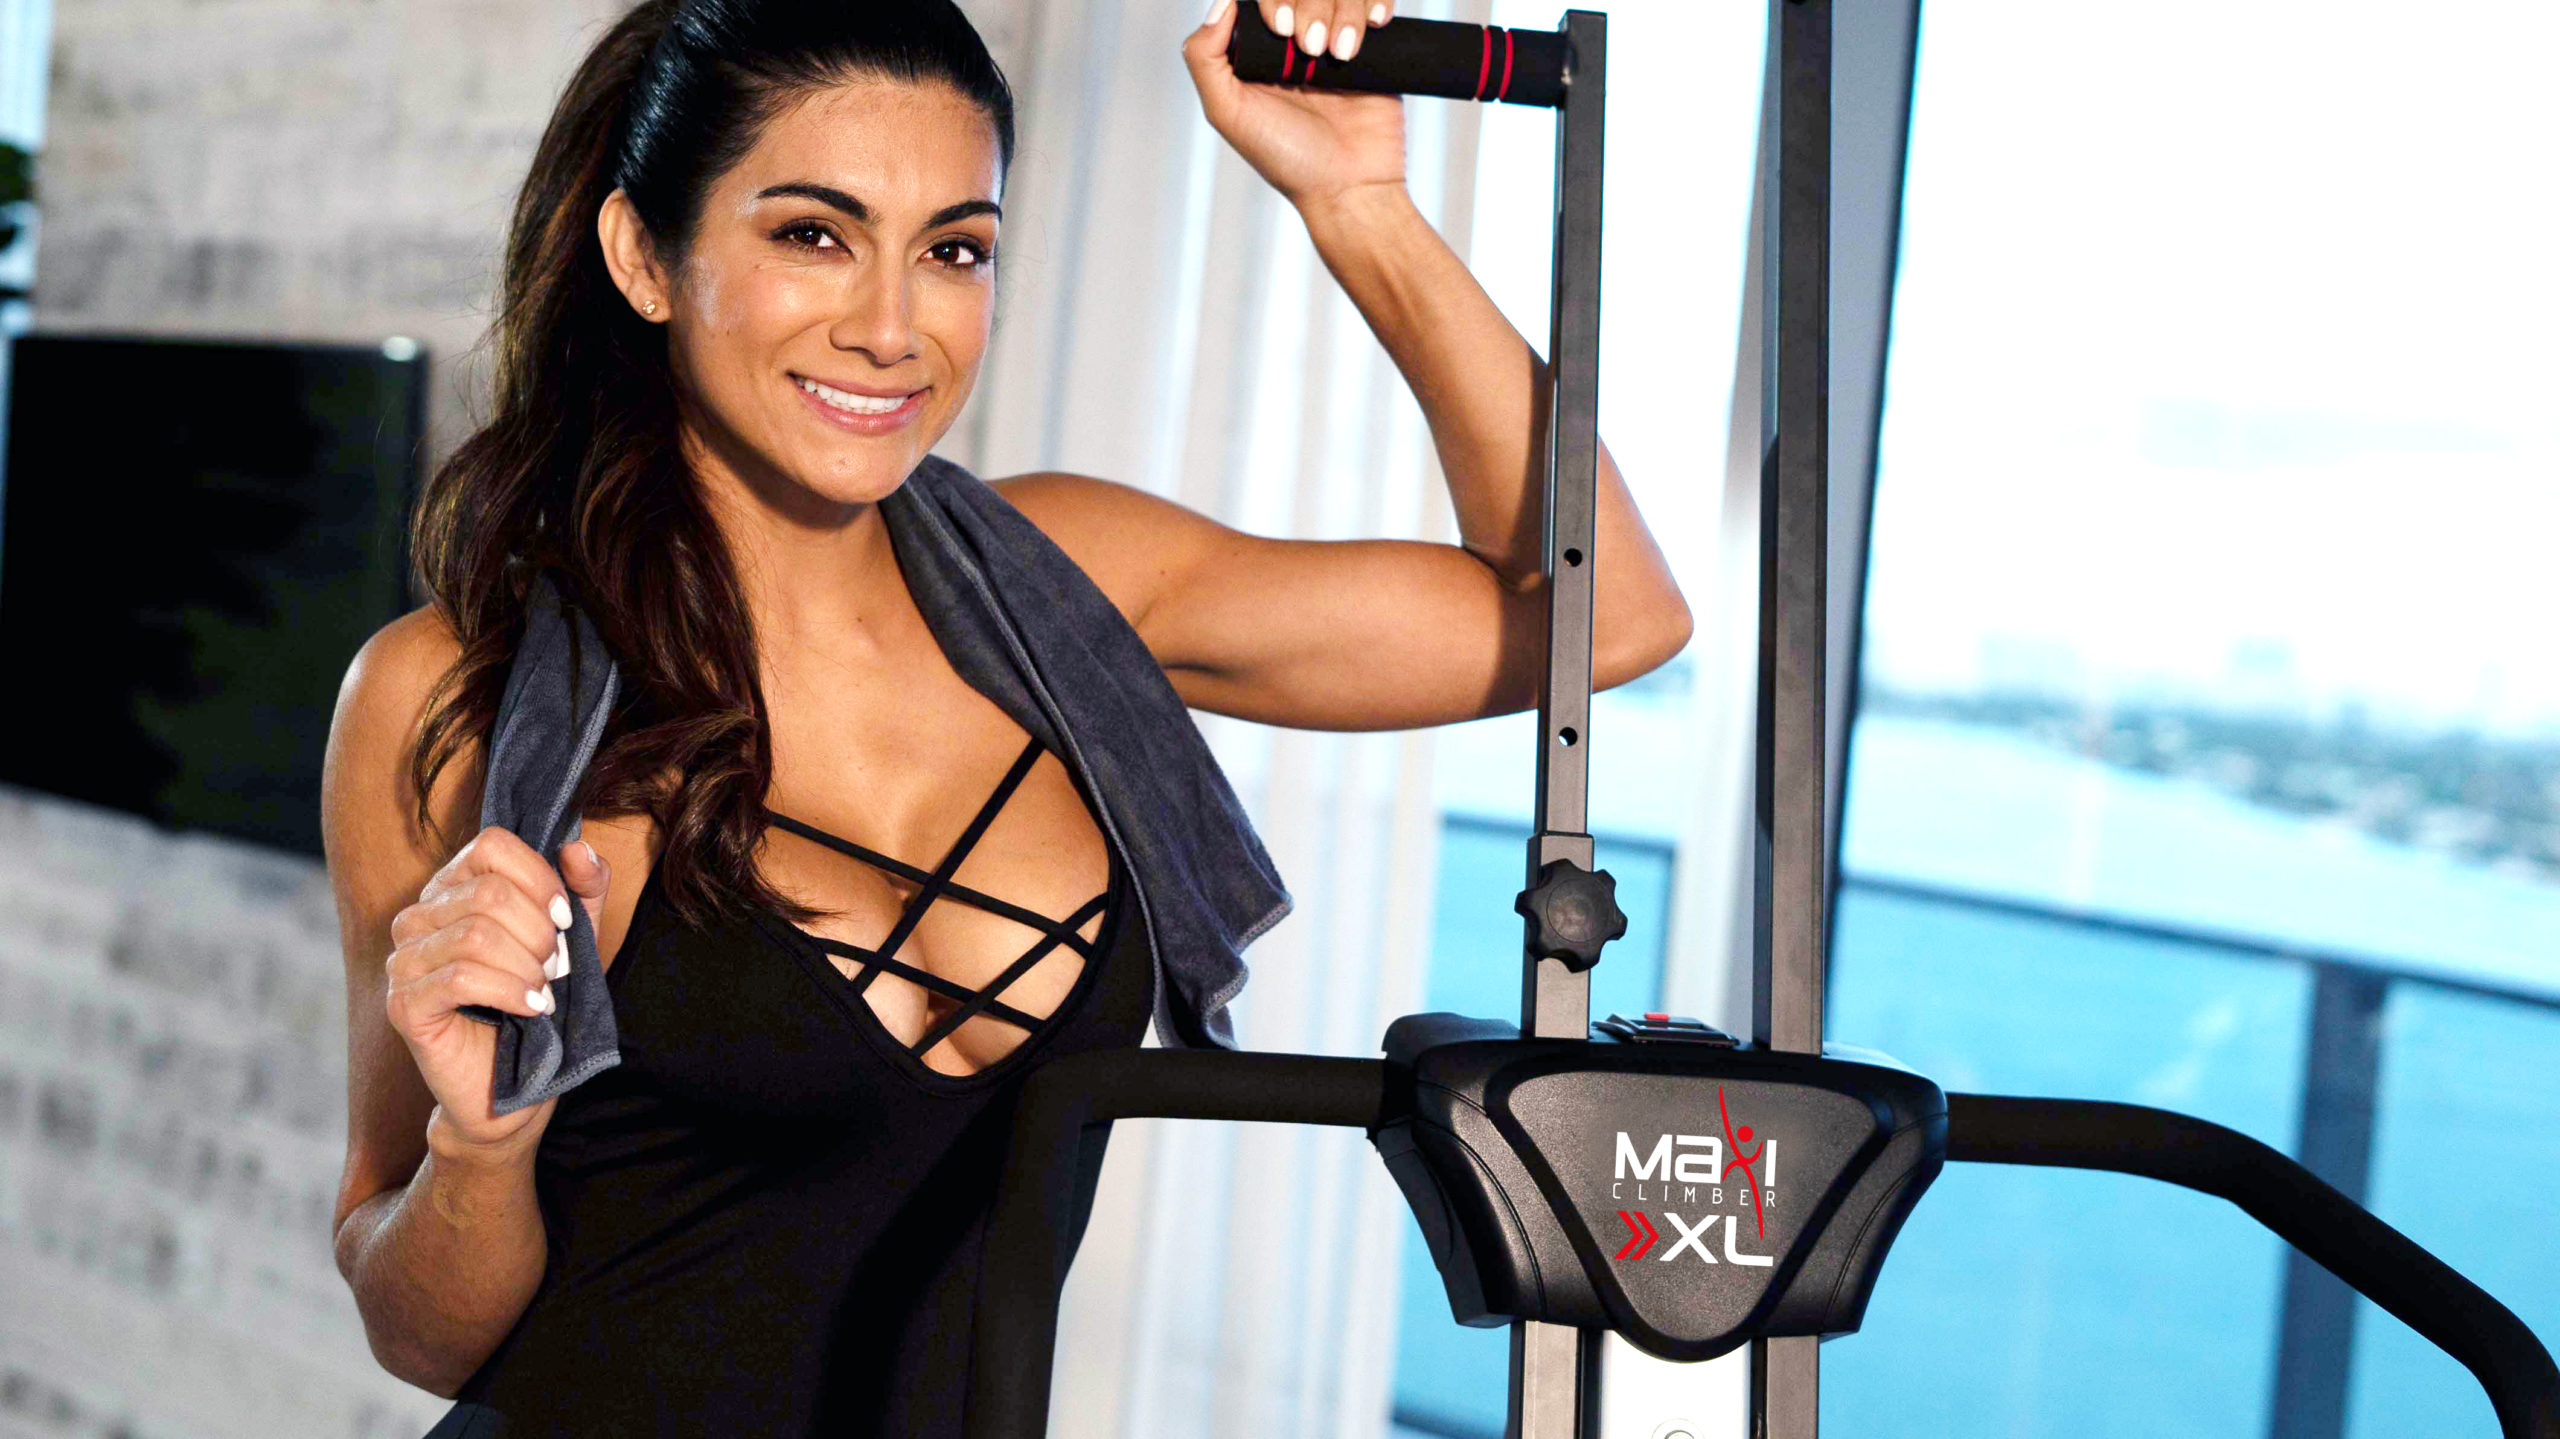 HIIT Exercises and Cardio With Maxiclimber